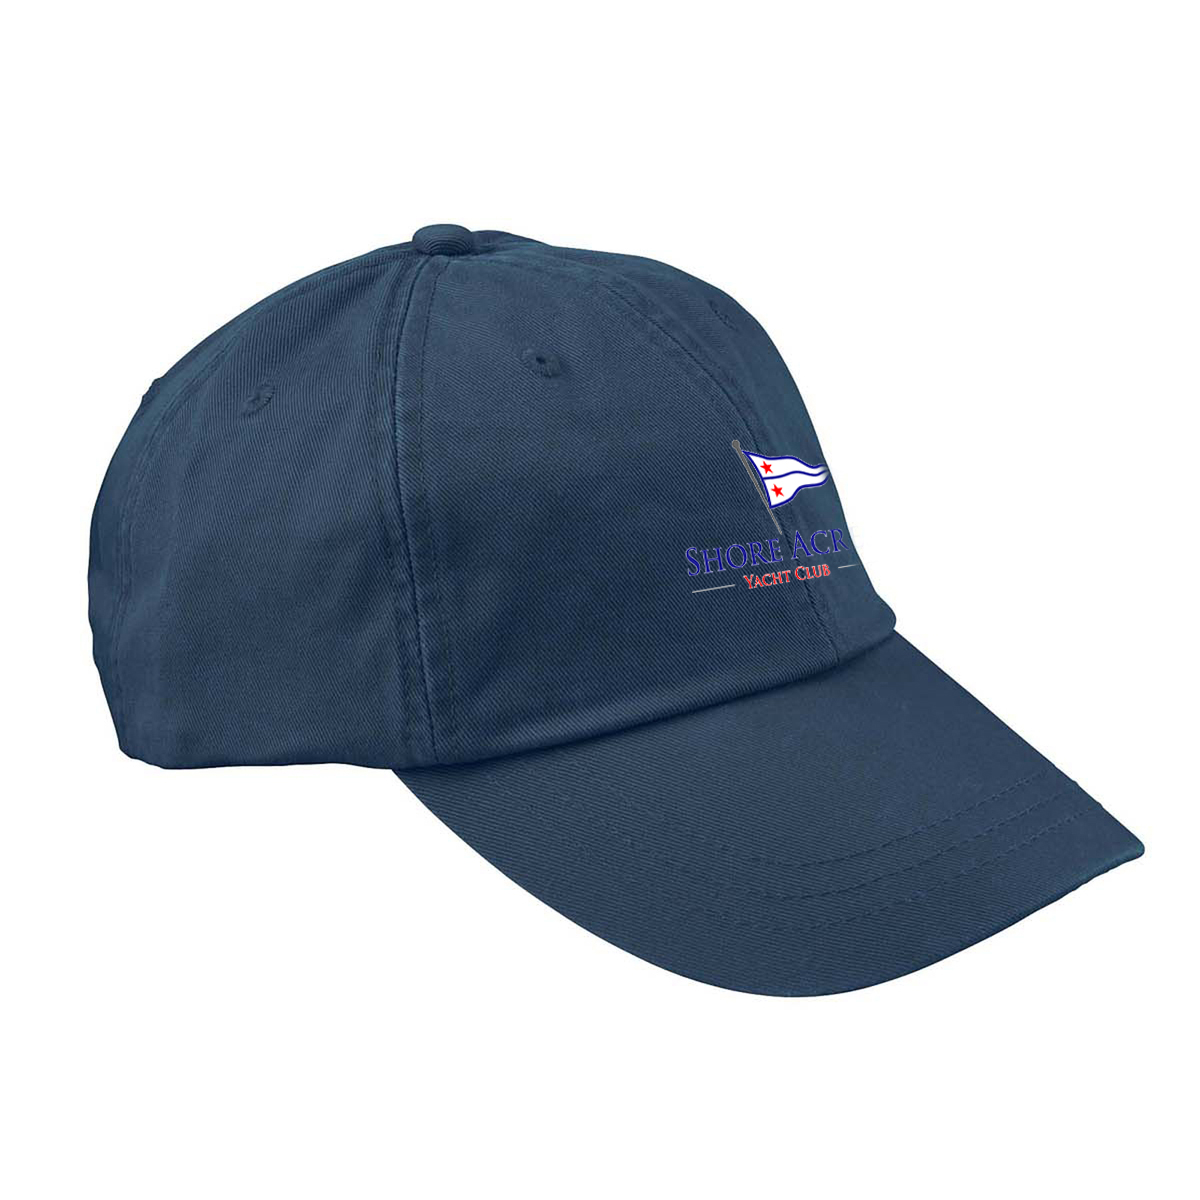 SHORE ACRES YC - ADAMS OPTIMUM PIGMENT DYED CAP